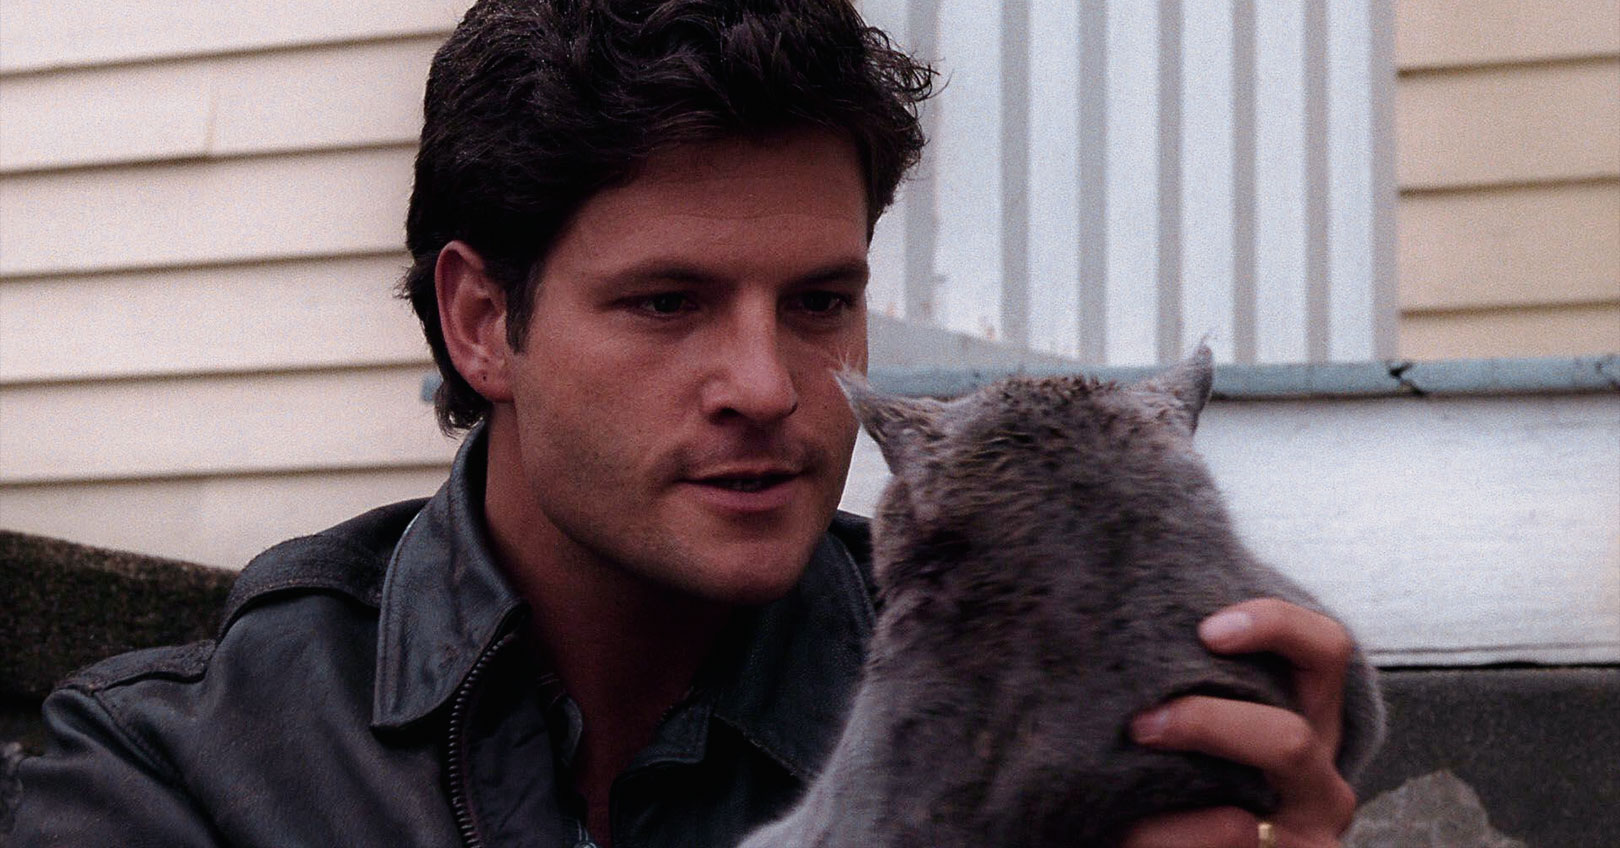 Pet Sematary (1989) - Dale Midkiff and Church the Cat